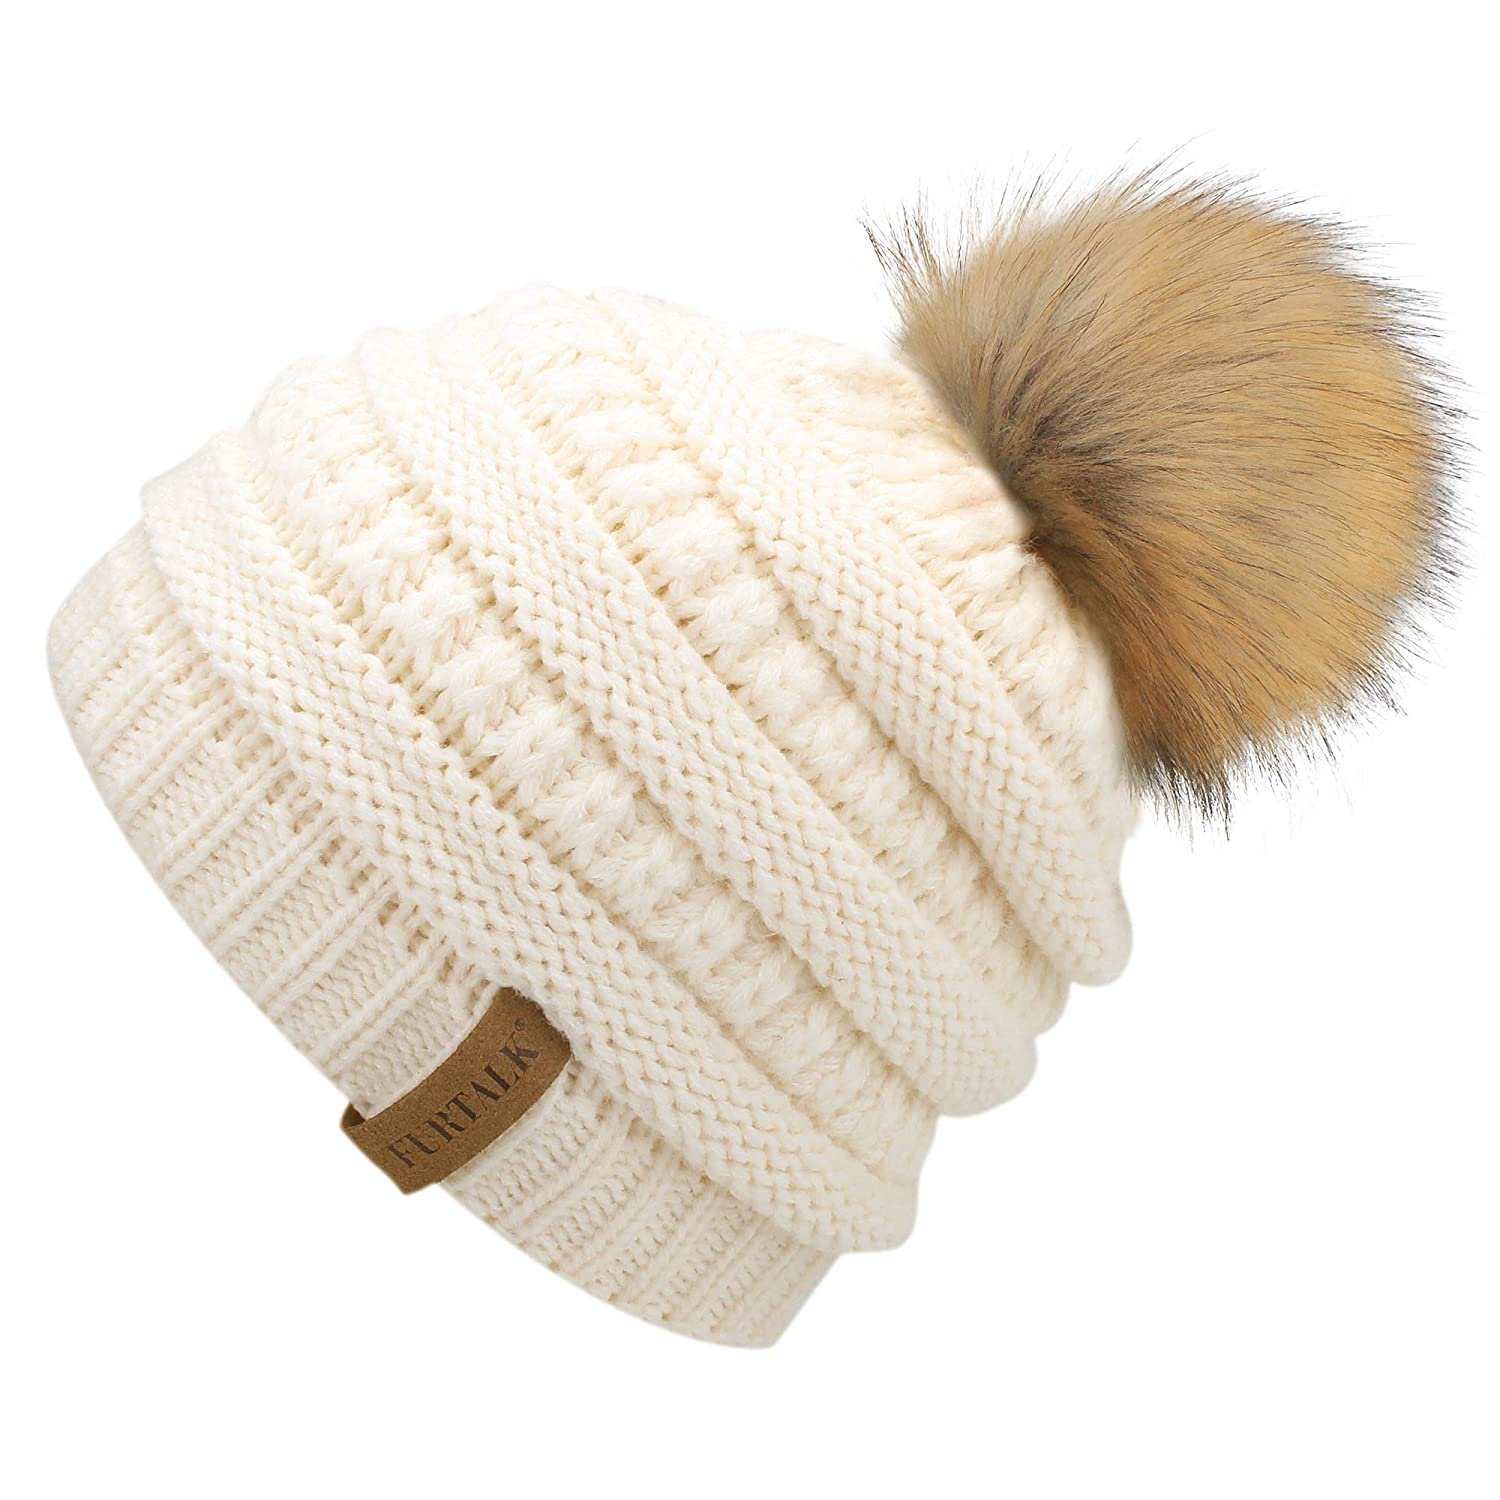 7a0ce4a857d Amazon.com  FURTALK Kids Girls Boys Winter Knit Beanie Hats Faux Fur Pom  Pom Hat Bobble Ski Cap Toddler Baby Hats 1-5 Years Old (One Size